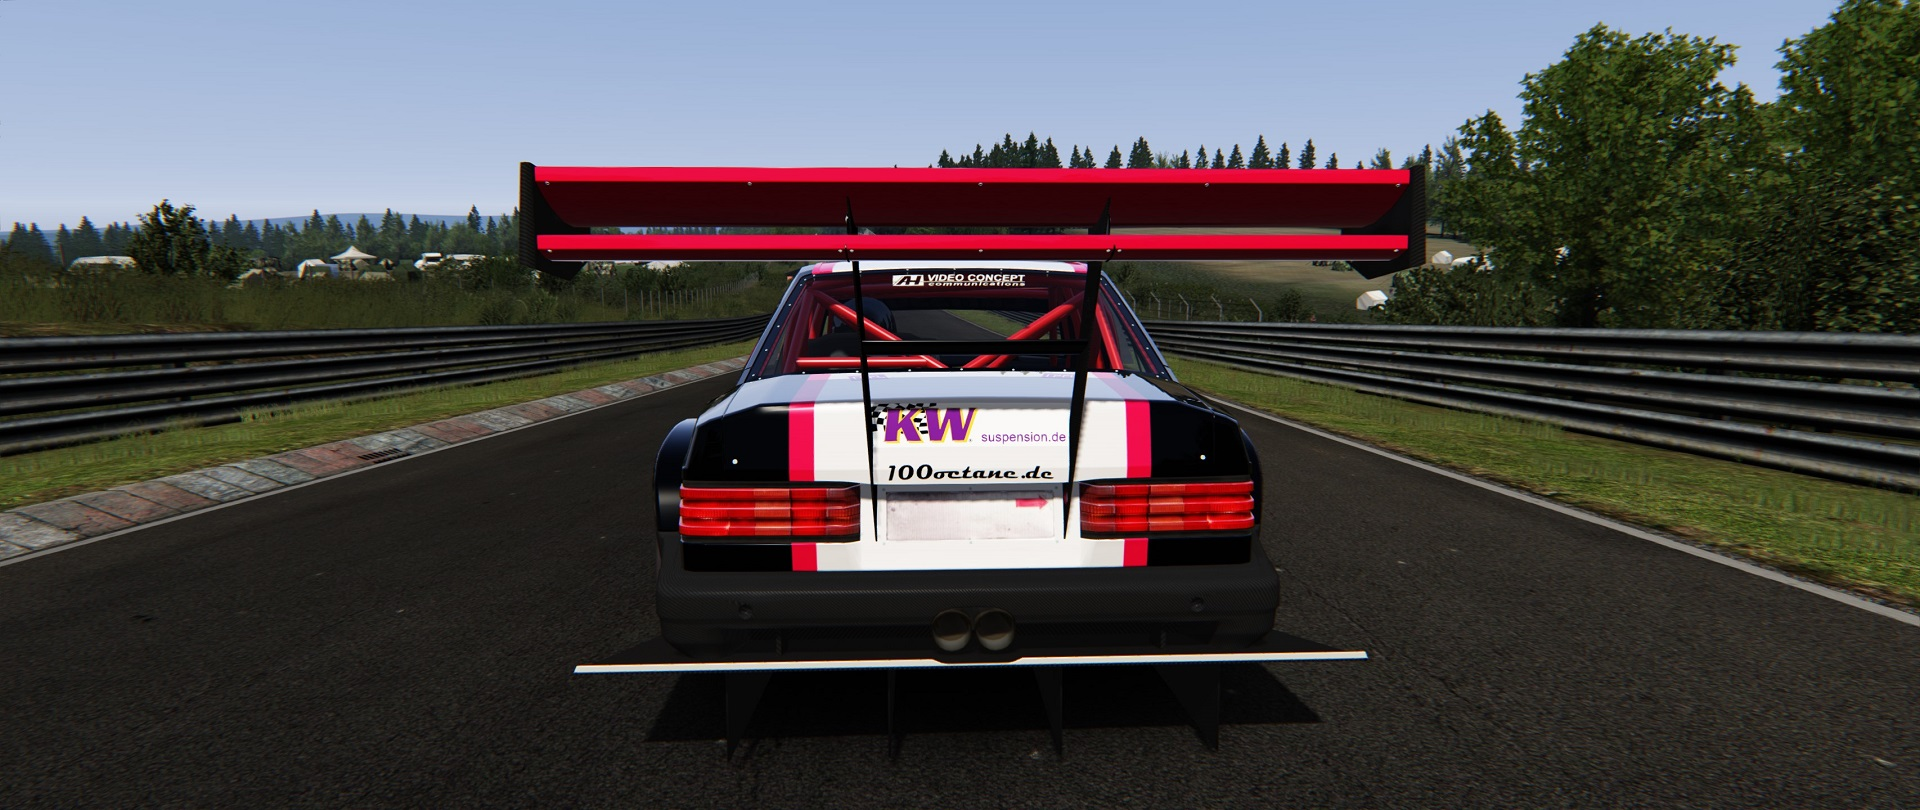 Screenshot_mercedes190judd_ks_nordschleife_24-11-116-19-19-28.jpg